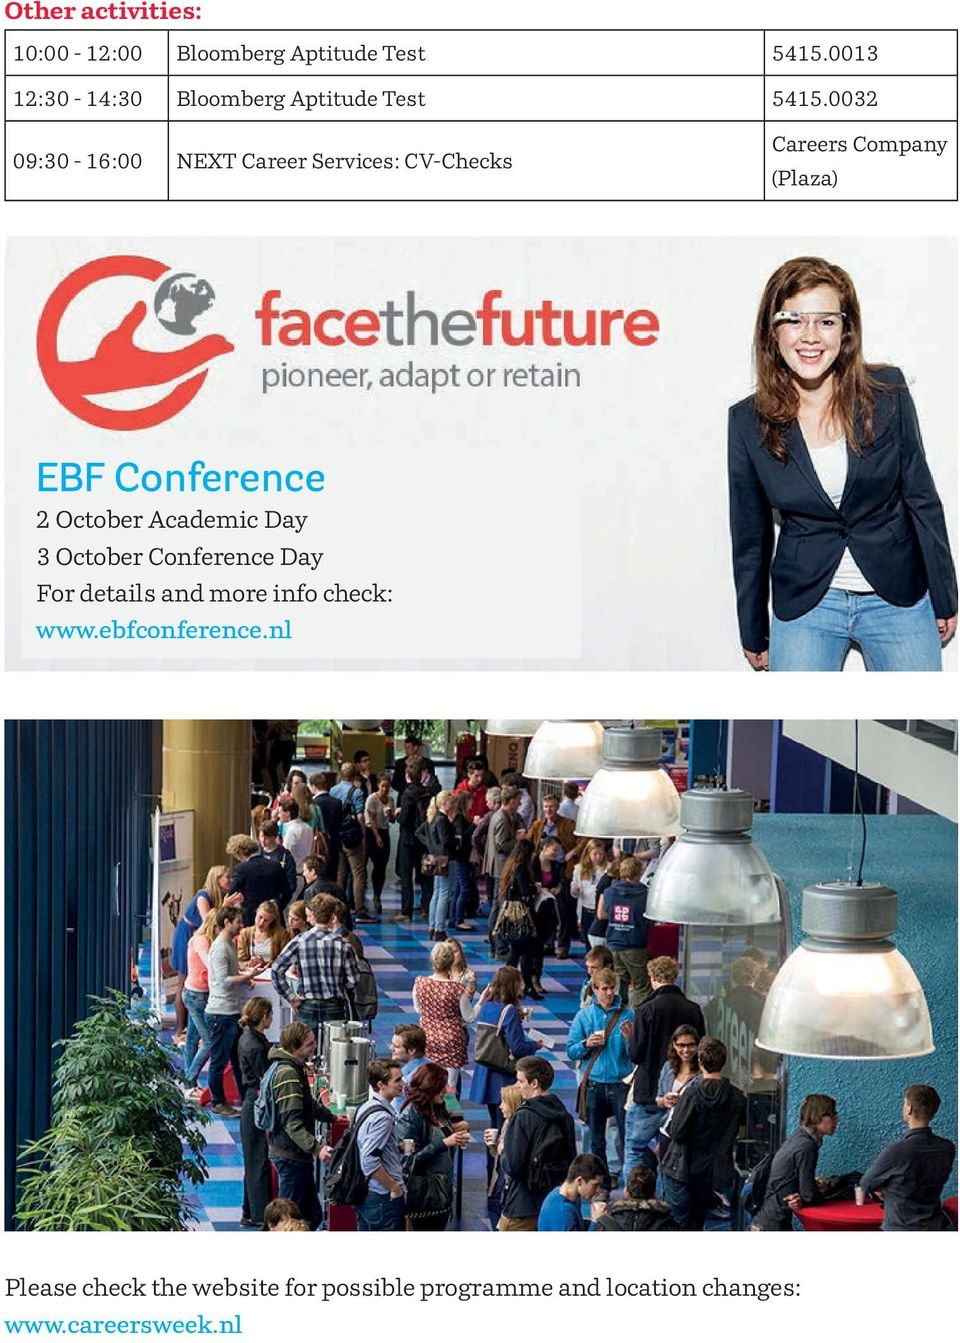 0032 09:30-16:00 NEXT Career Services: CV-Checks Careers Company (Plaza) EBF Conference 2